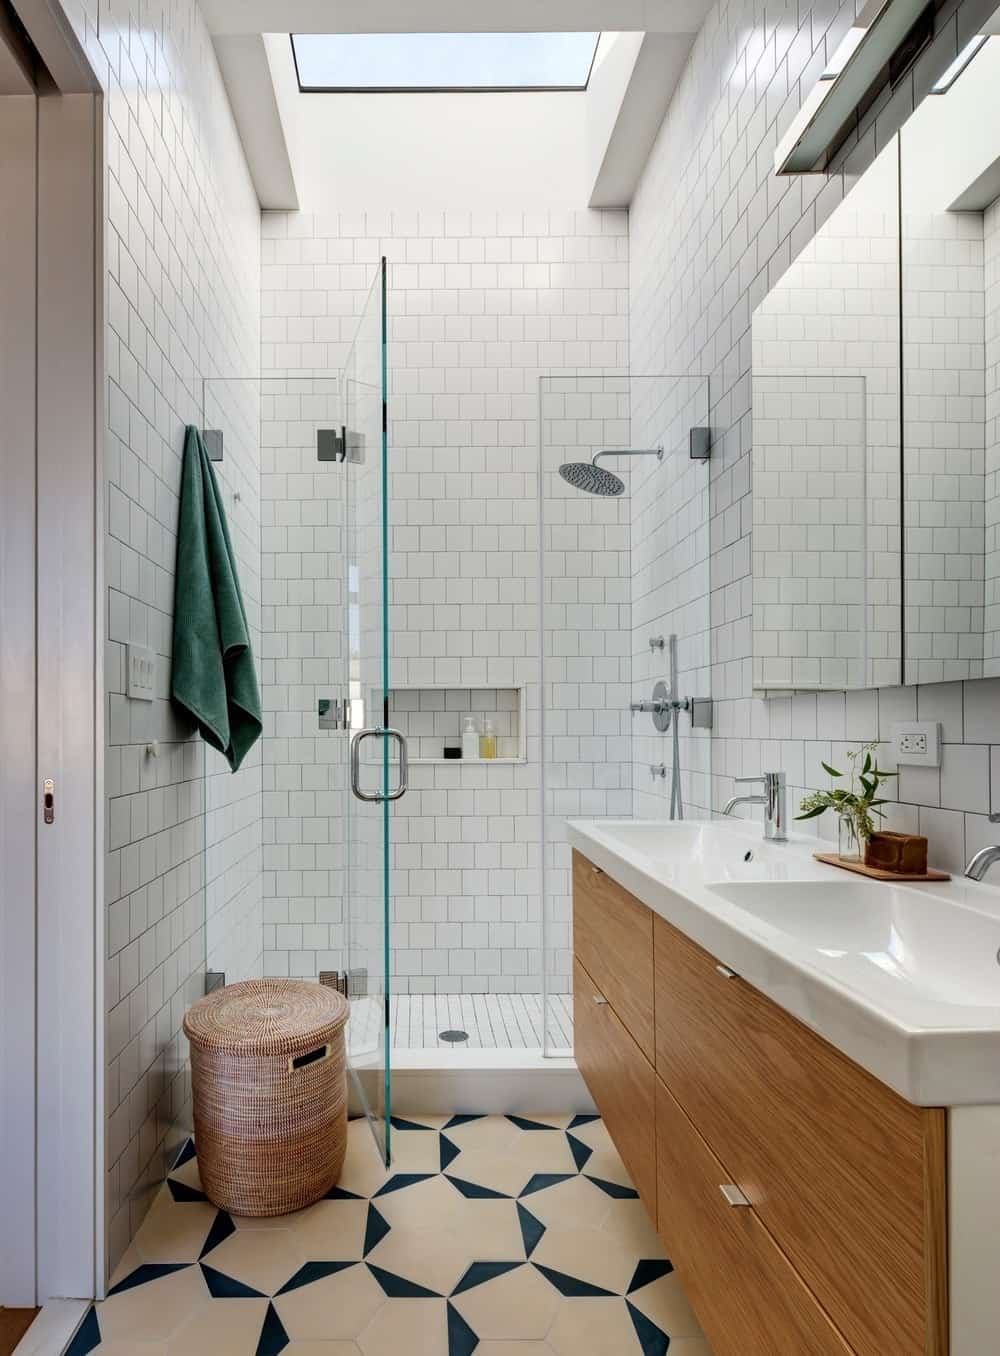 Contemporary bathroom with double sink and walk-in shower along with skylight and tile walls. Photo Credit: Francis Dzikowski/OTTO